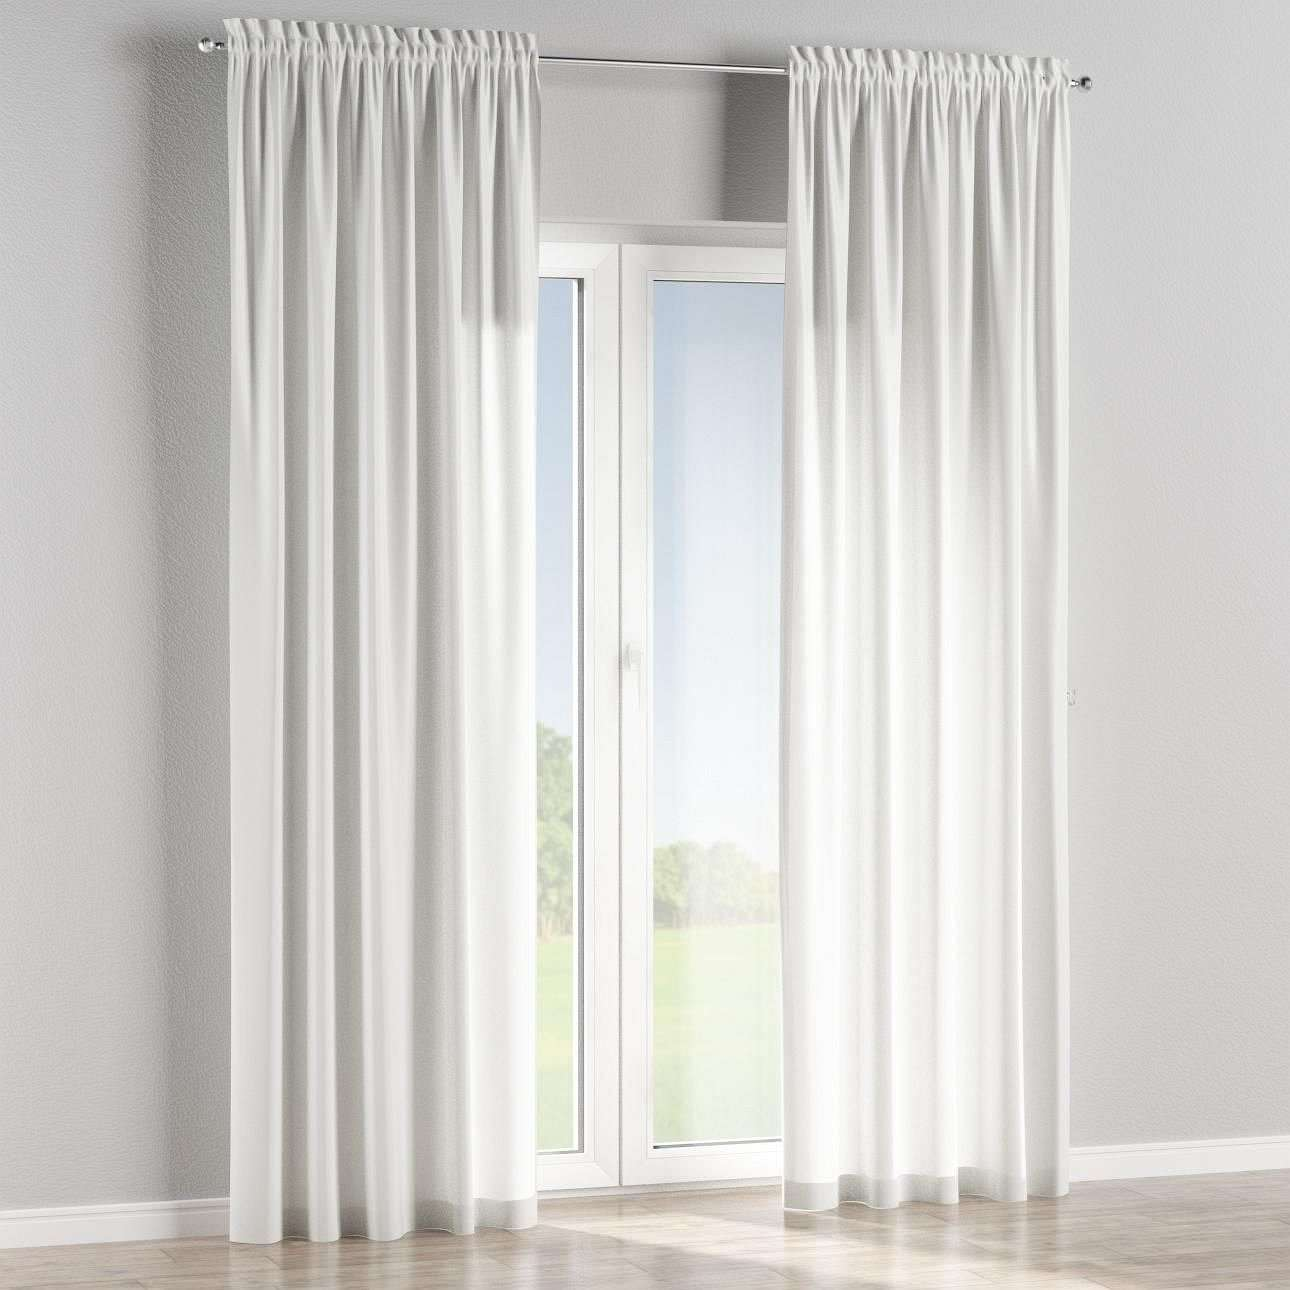 Slot and frill lined curtains in collection Victoria, fabric: 130-07